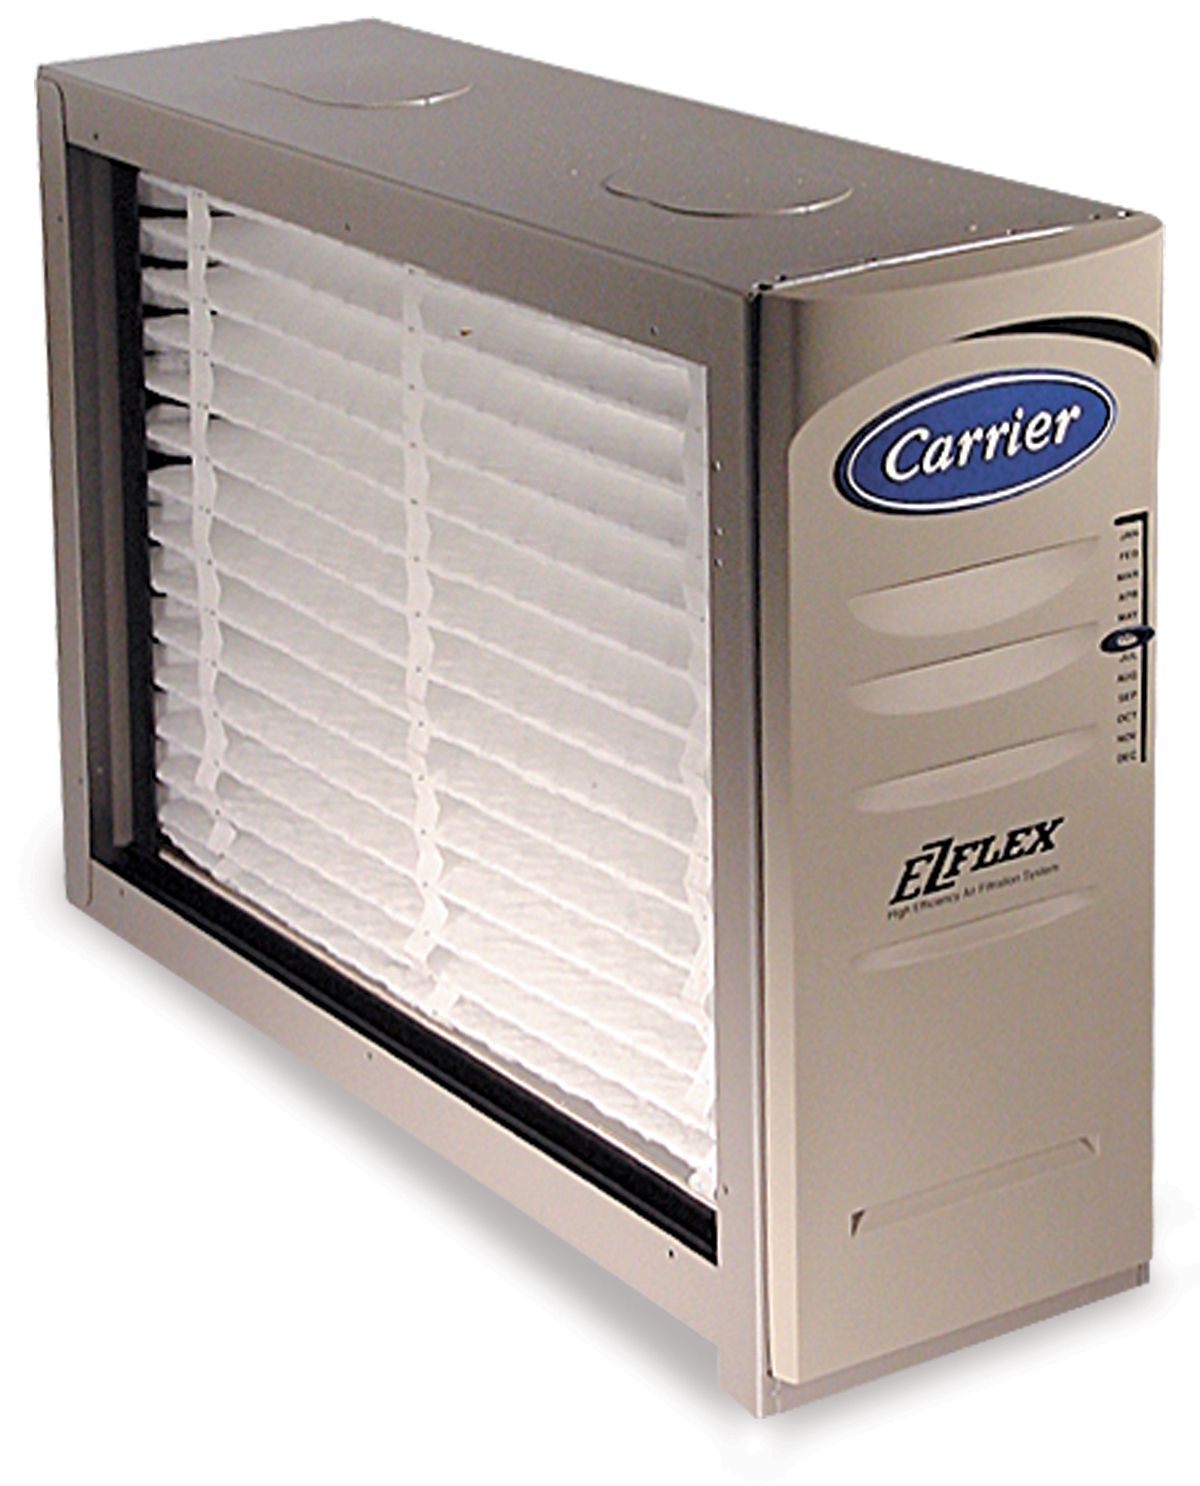 Carrier's EZFlex filter and housing or Heating